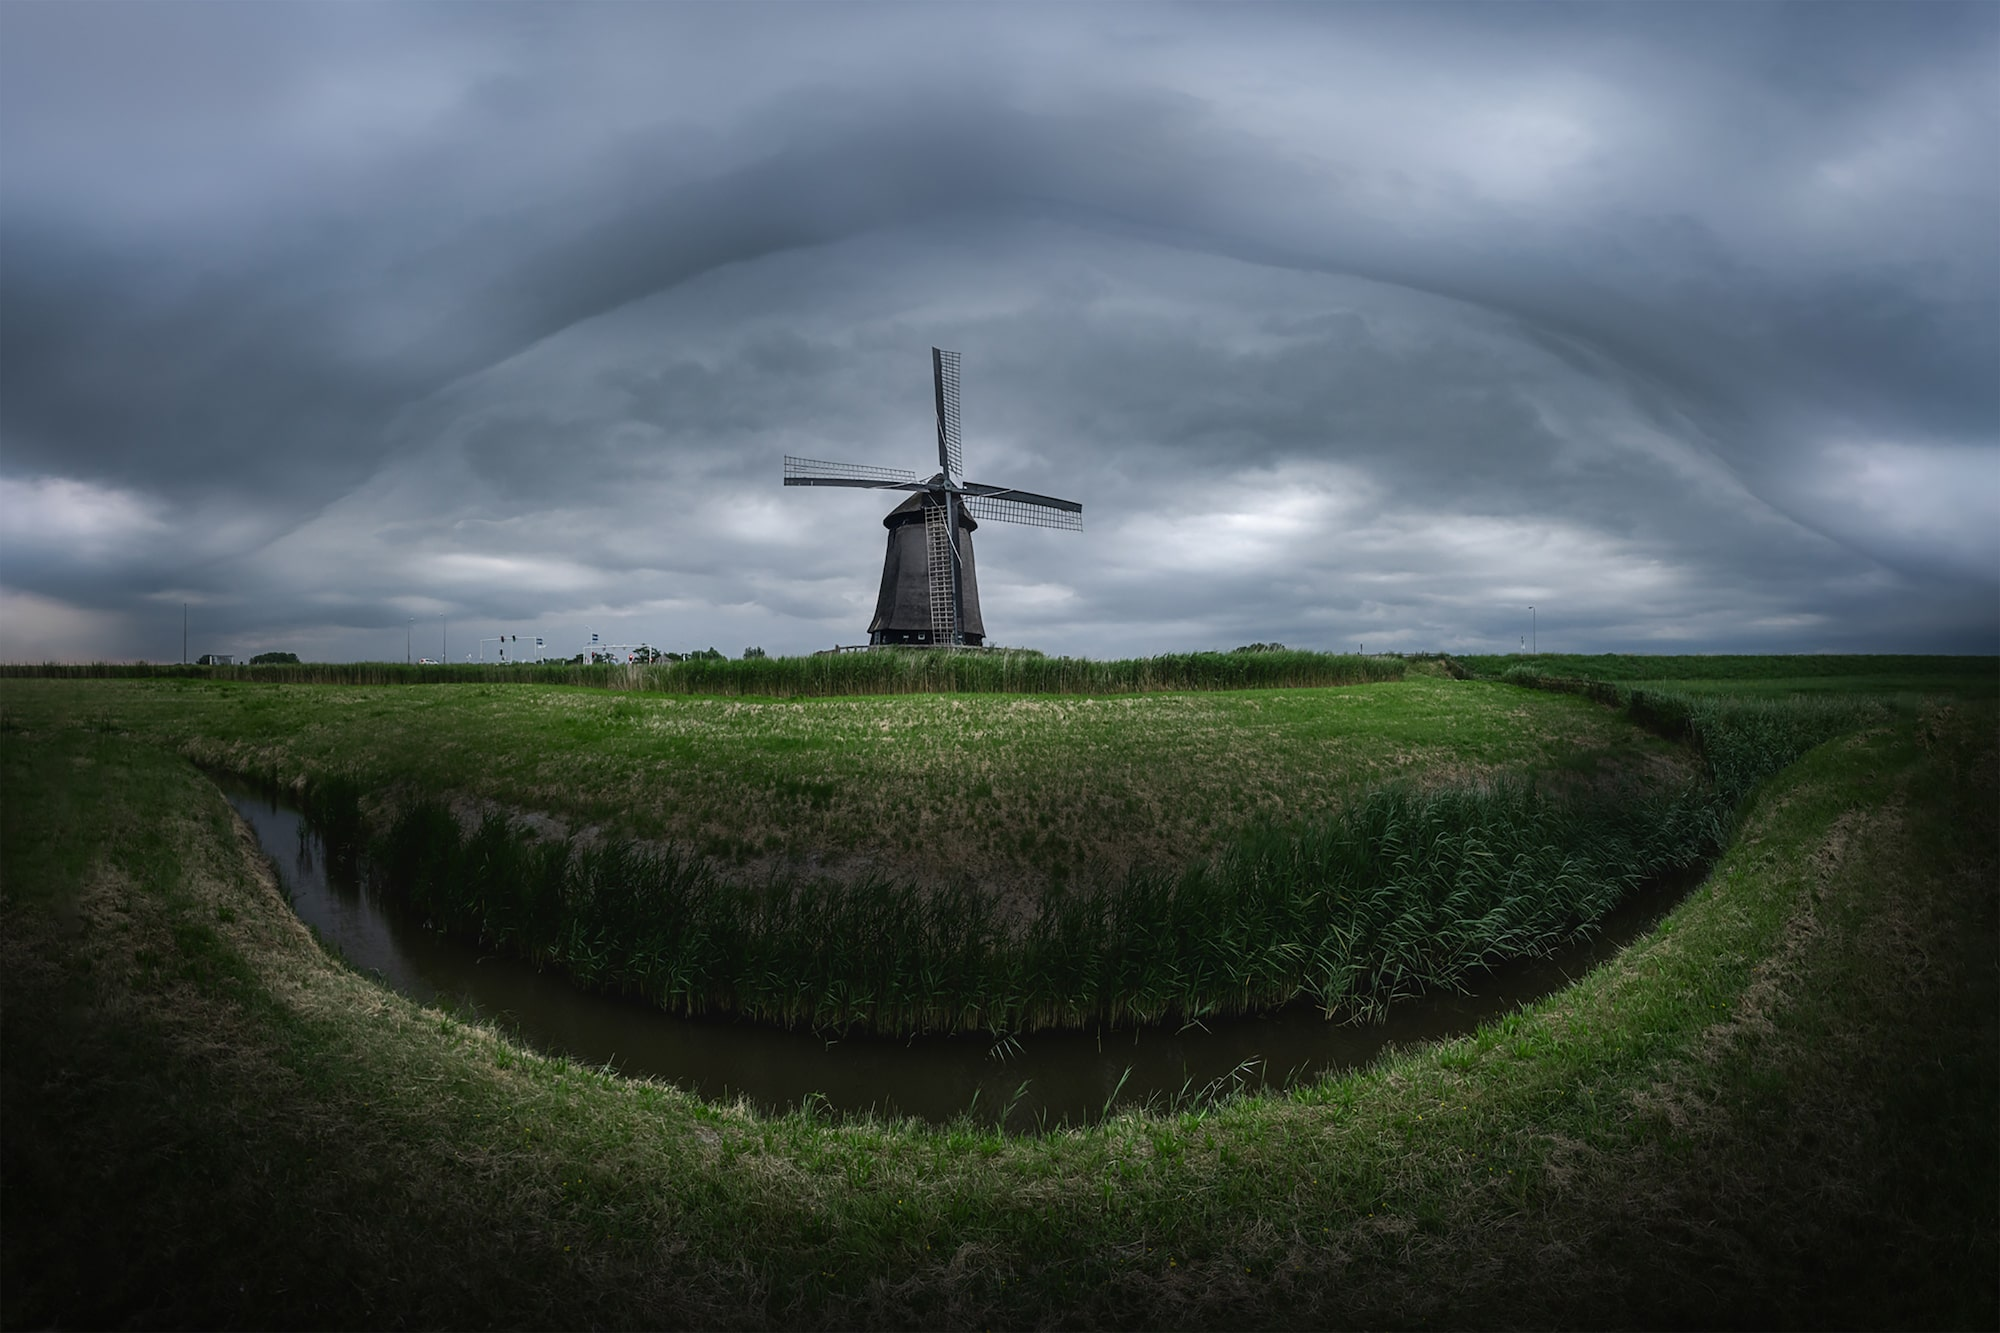 albert dros sony alpha 7RM4 panoramic view of a windmill in the netherlands with dramatic stormy skies behind